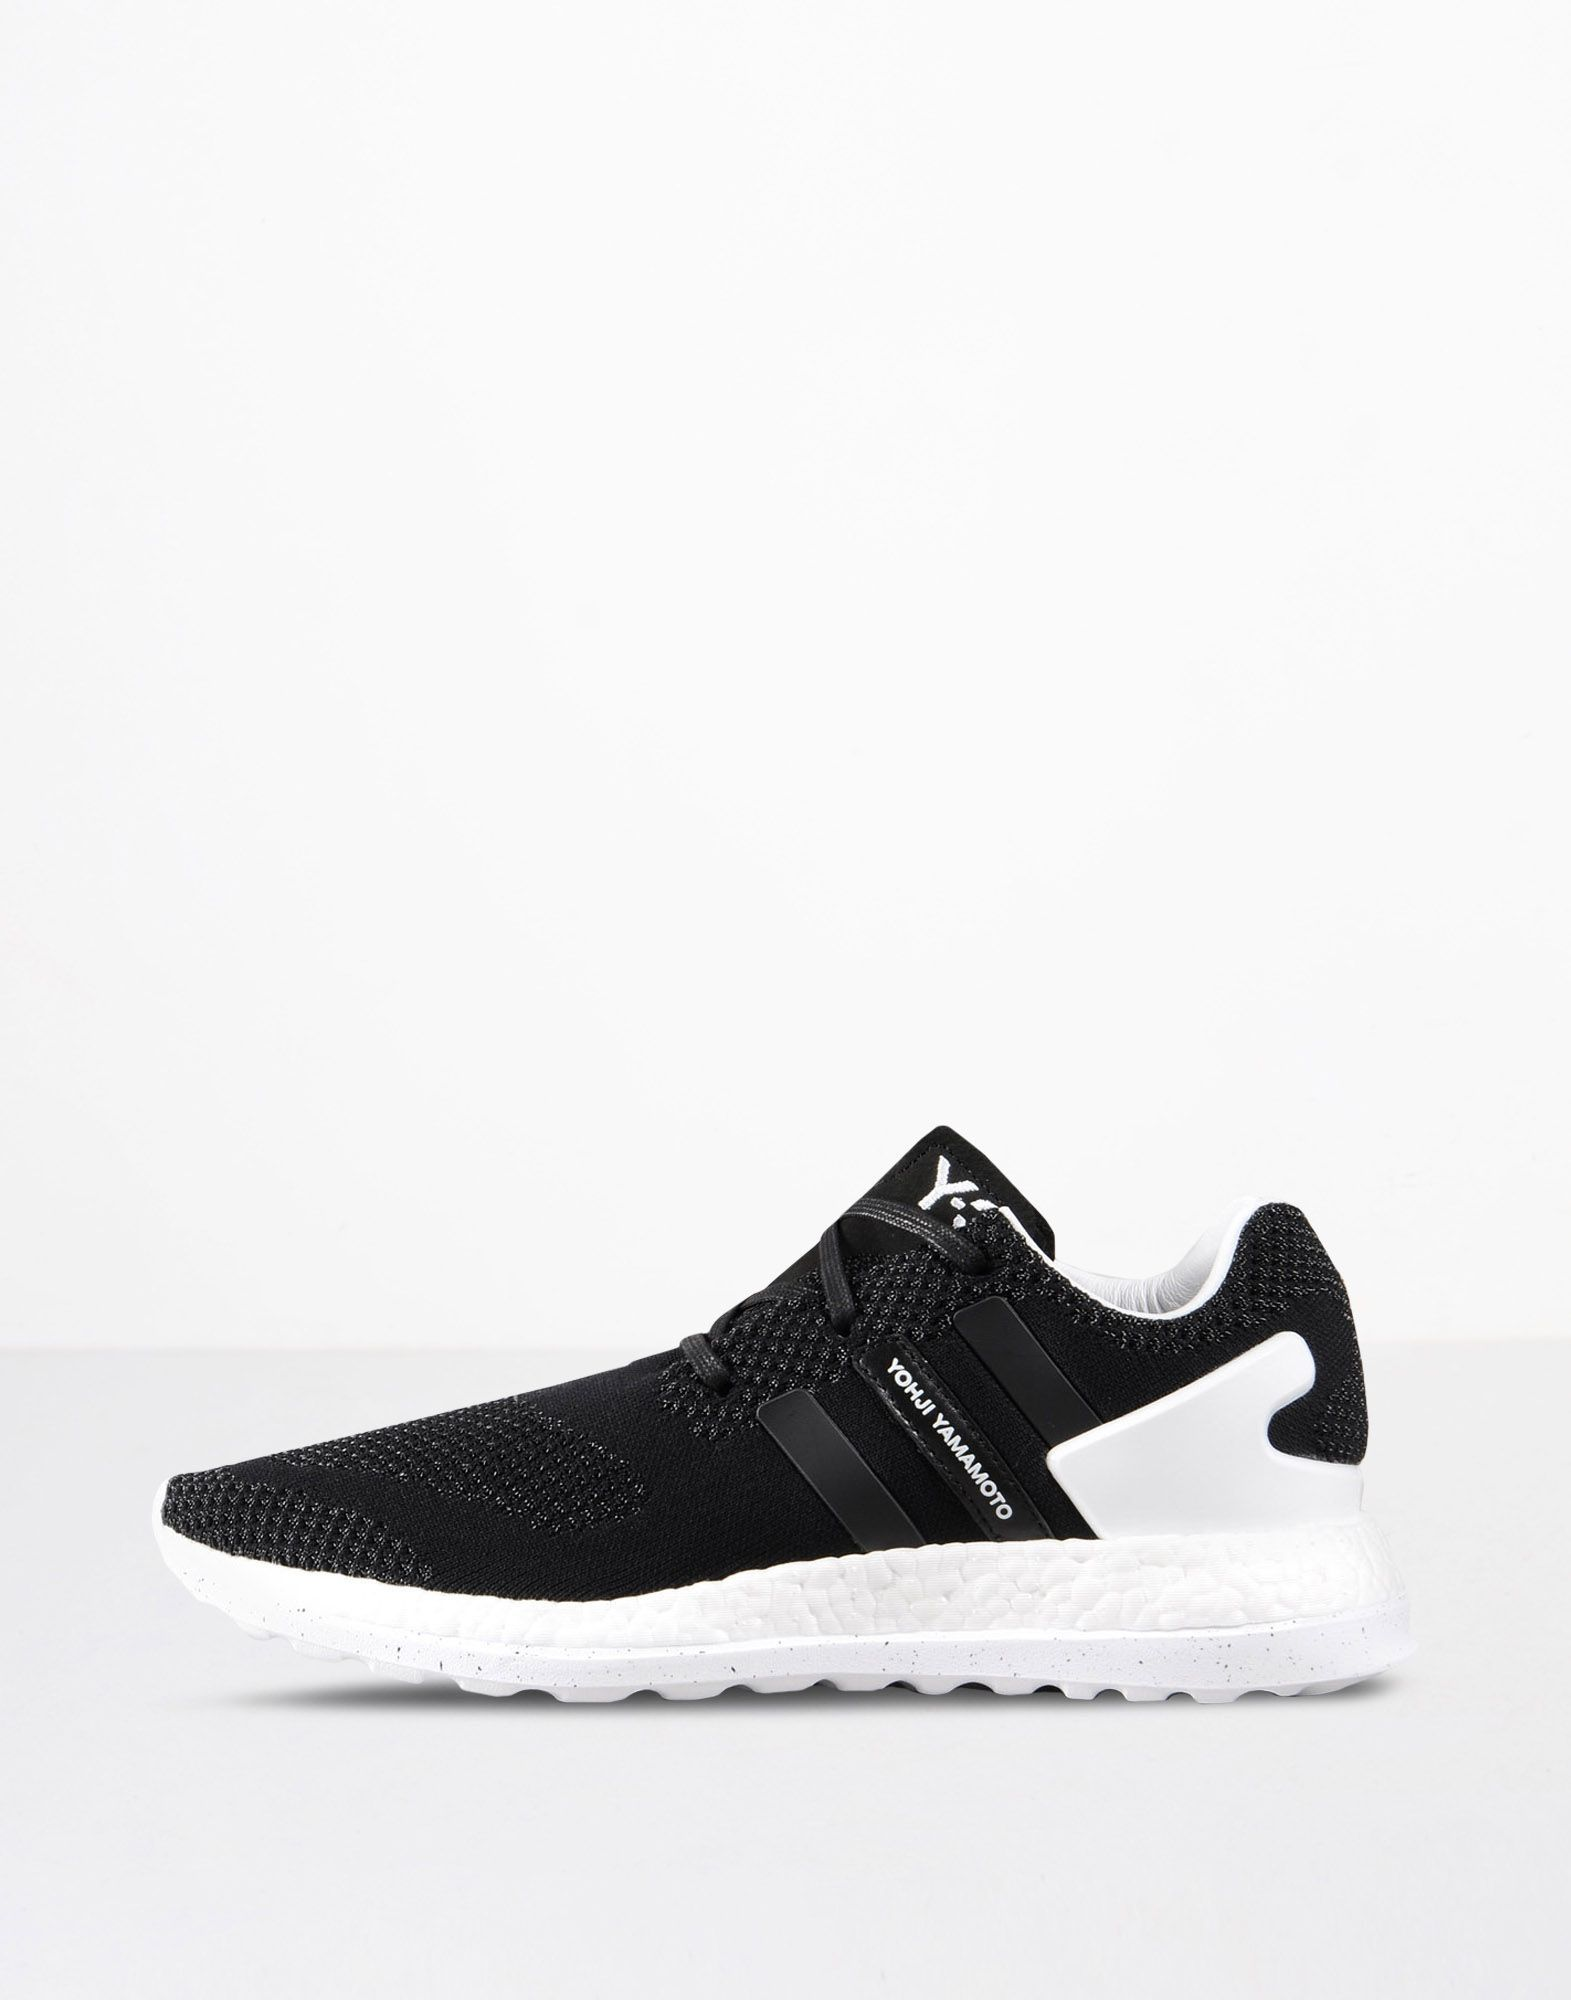 Adidas Pure Boost Zg chaussures